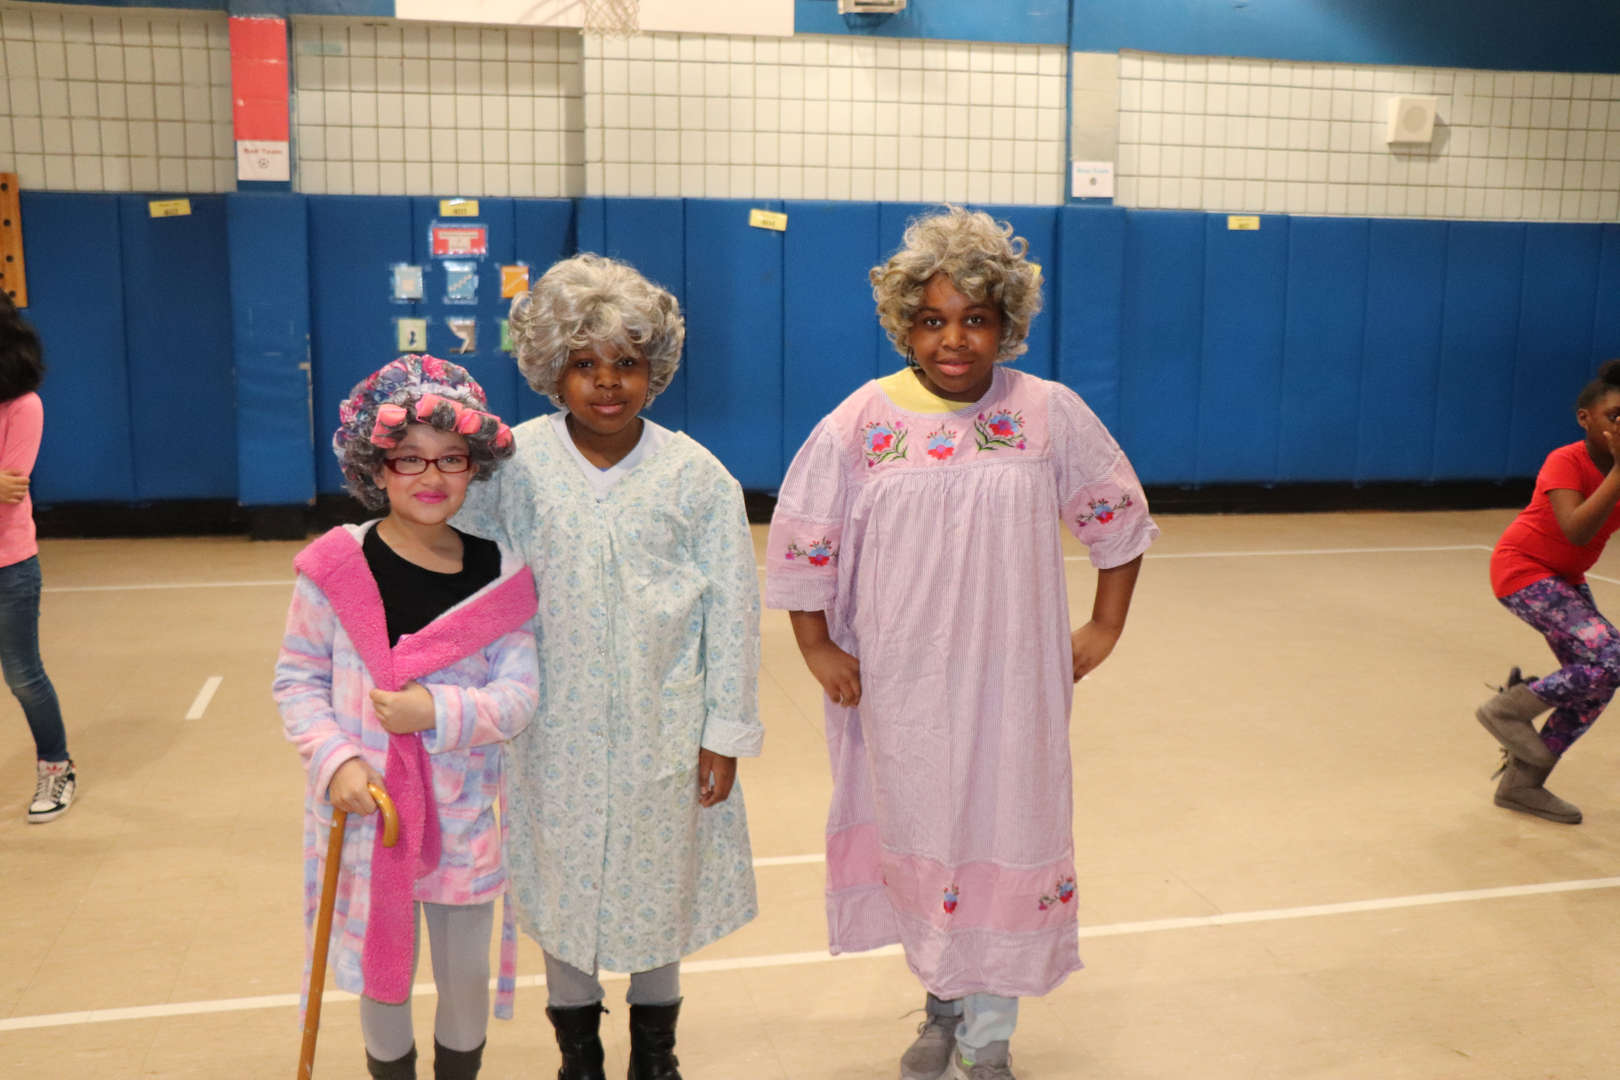 Some students dressed up like they are 100 years old.